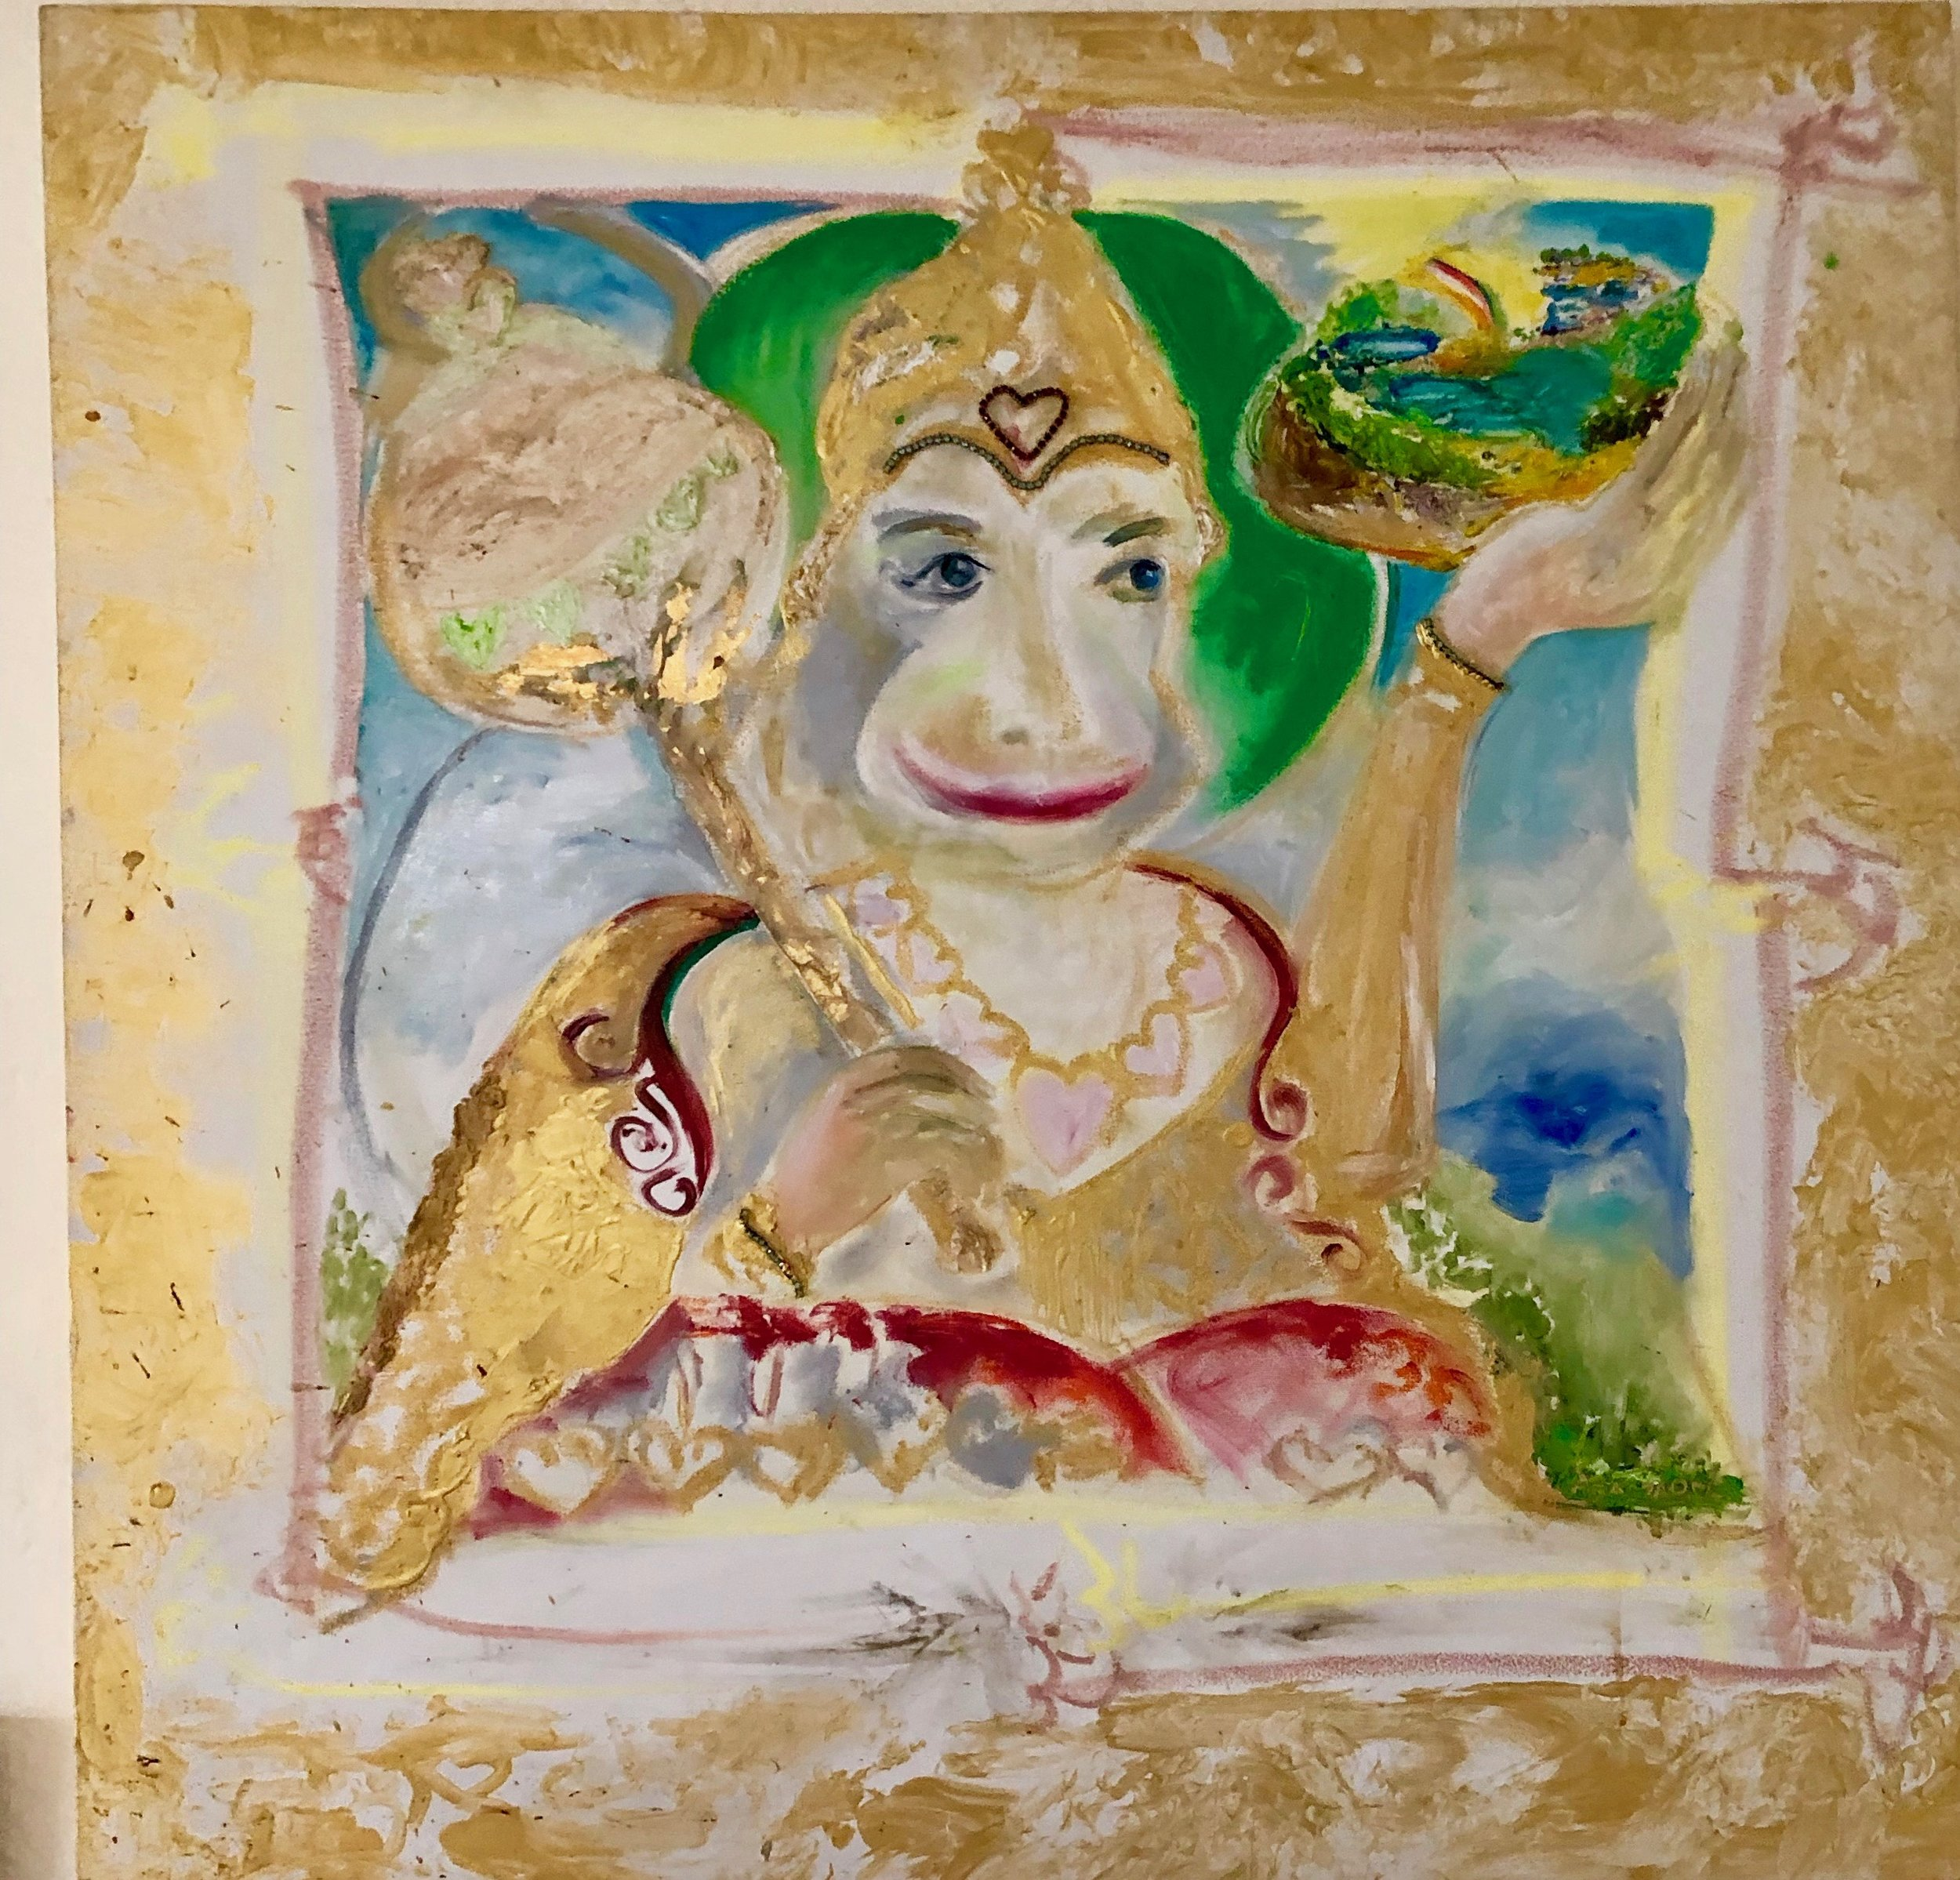 BLESSINGS OF HANUMAN'S PURE LOVE, ASSEMBLAGE COLLAGE PAINTING WITH GOLD LEAF, 36 X 36 INCHES